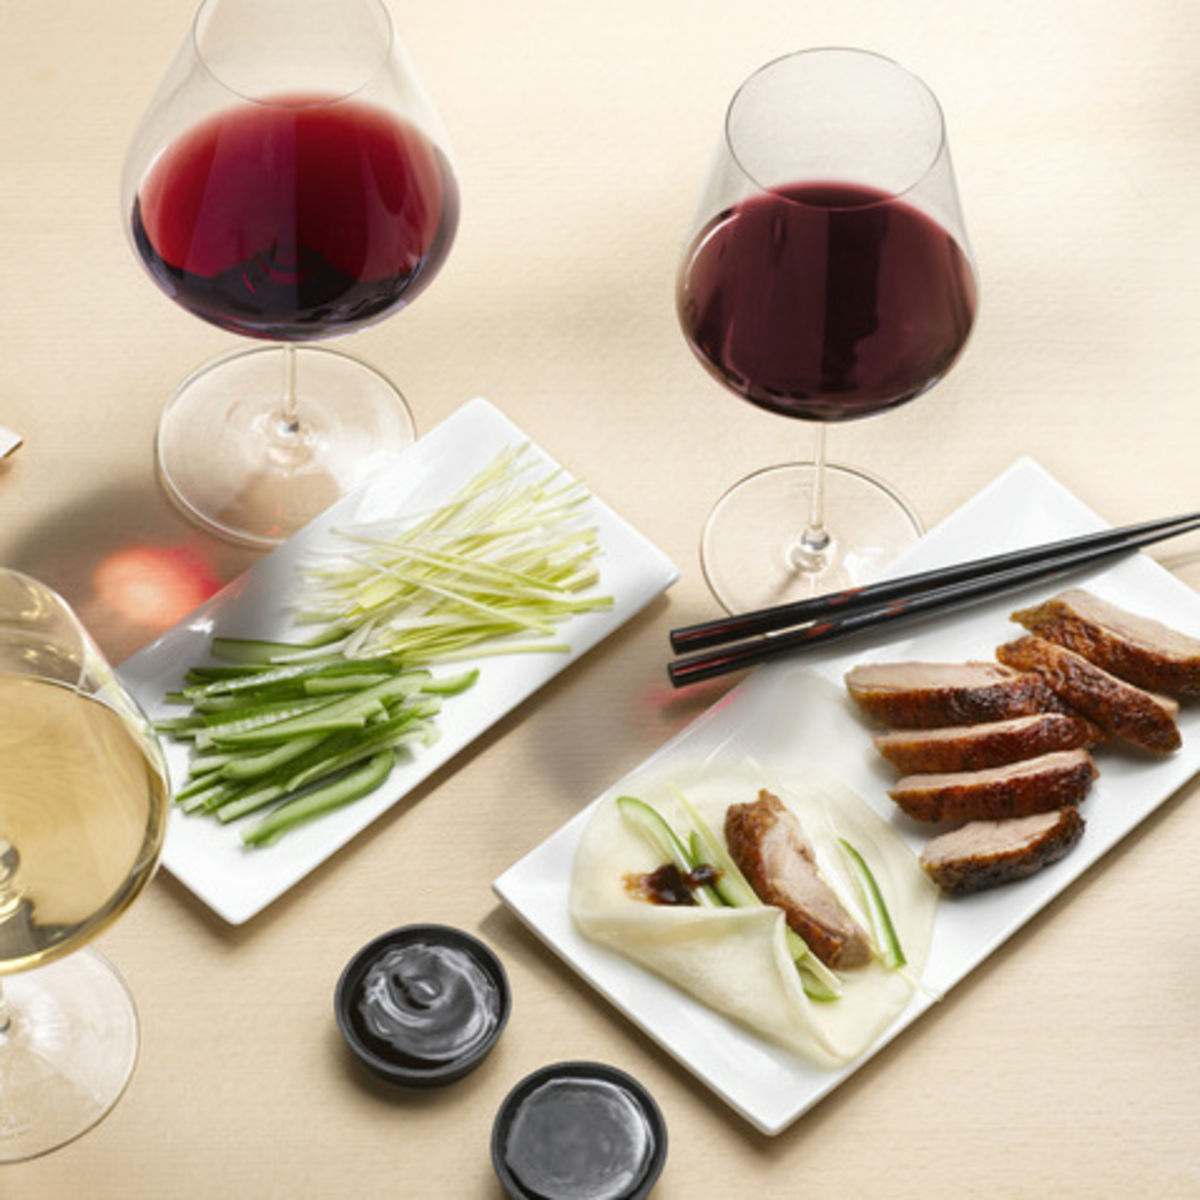 The picture shows the dish peking duck and three glasses, filled with white and red wine.